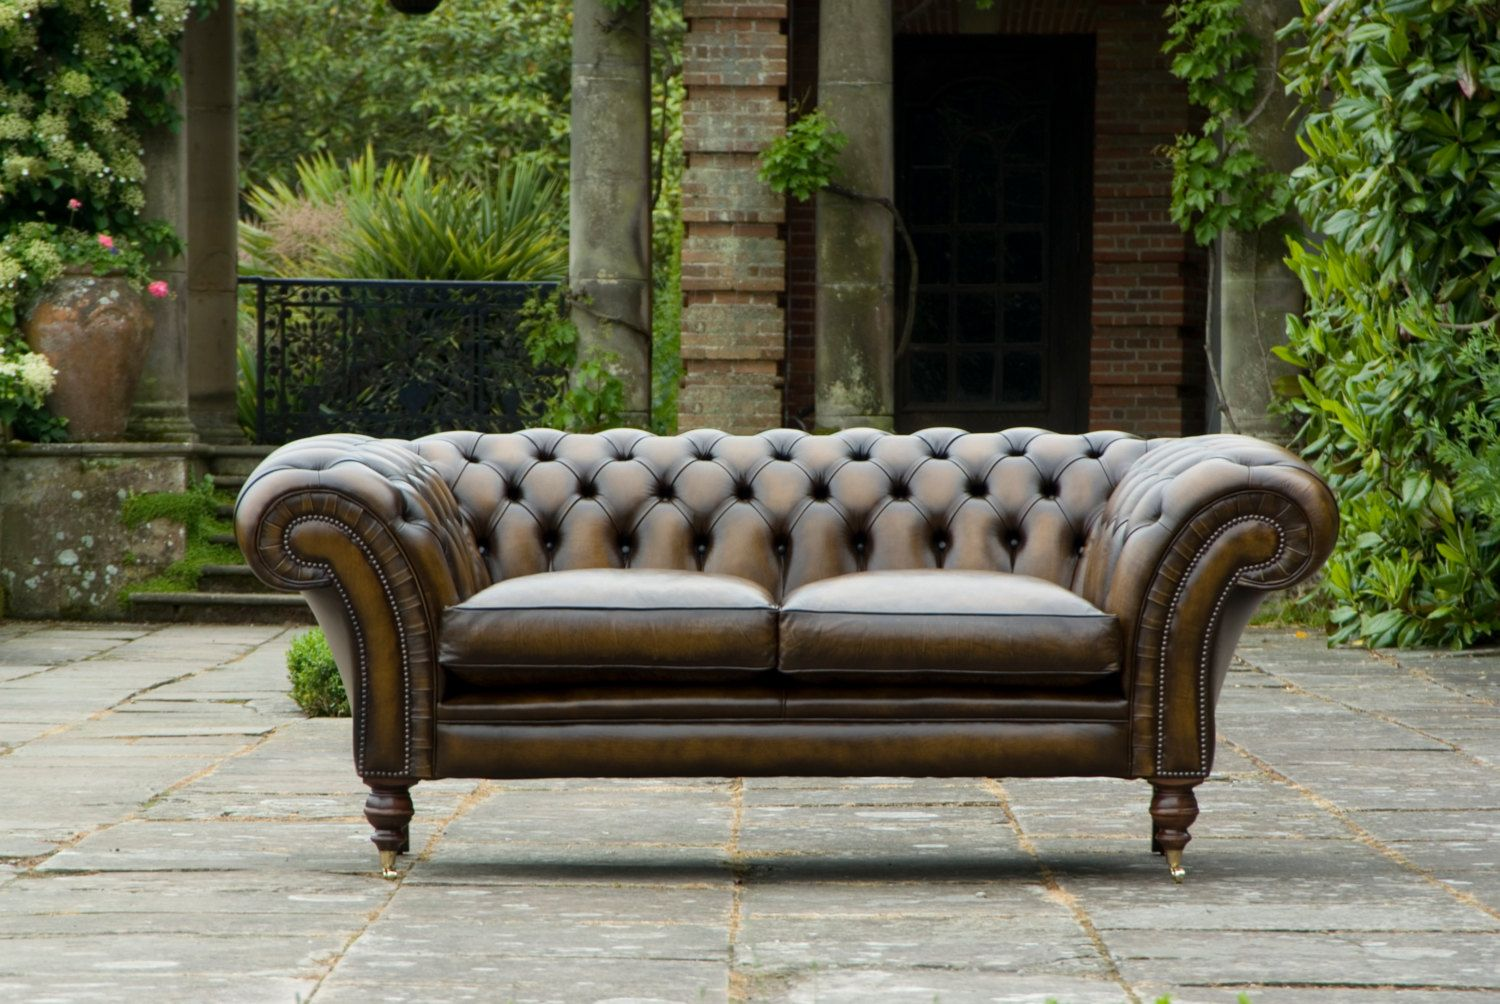 From maisonliving charleston polo vintage 2 seat club from maisonliving charleston polo vintage 2 seat club lounge rustic furniture locations gardens and decor pinterest rustic furniture parisarafo Choice Image